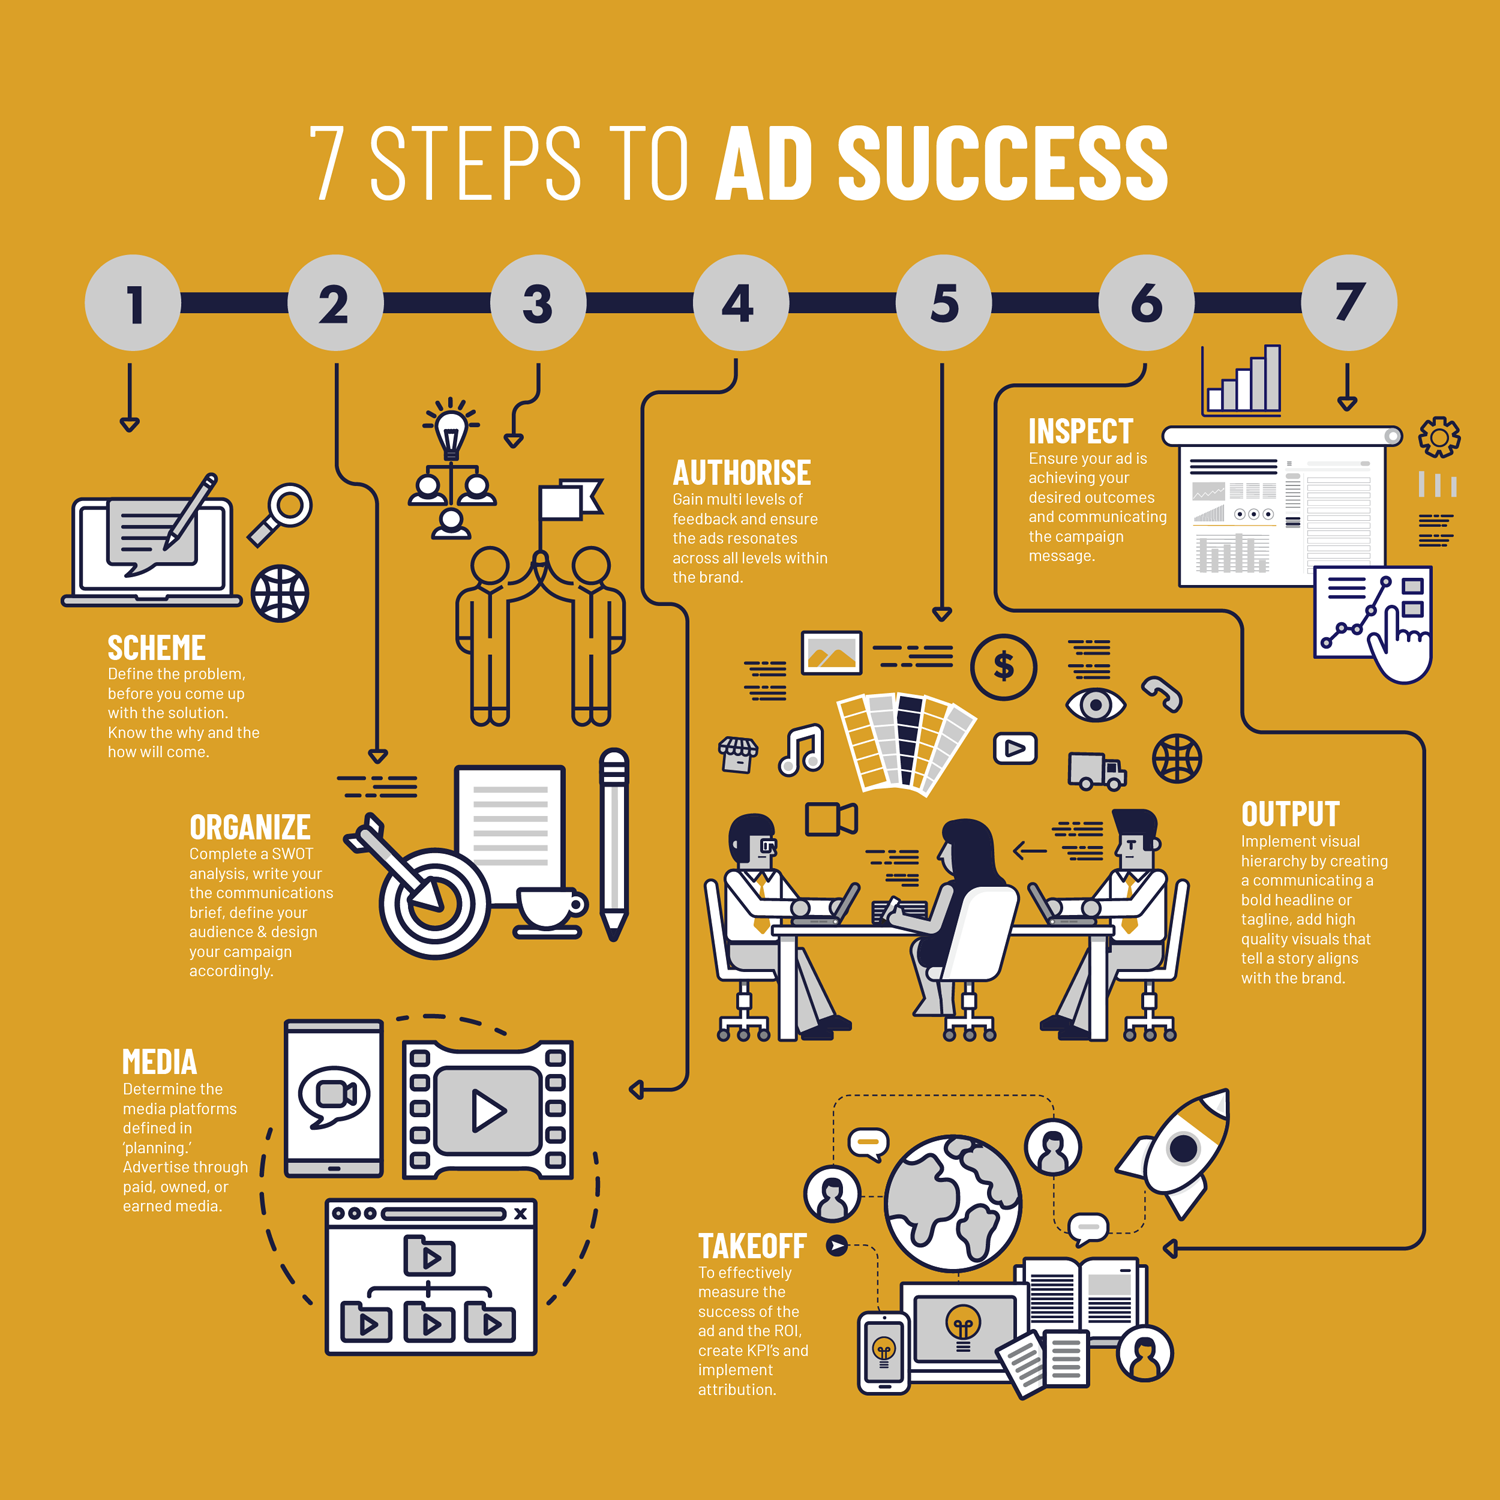 7 Steps to Ad Success